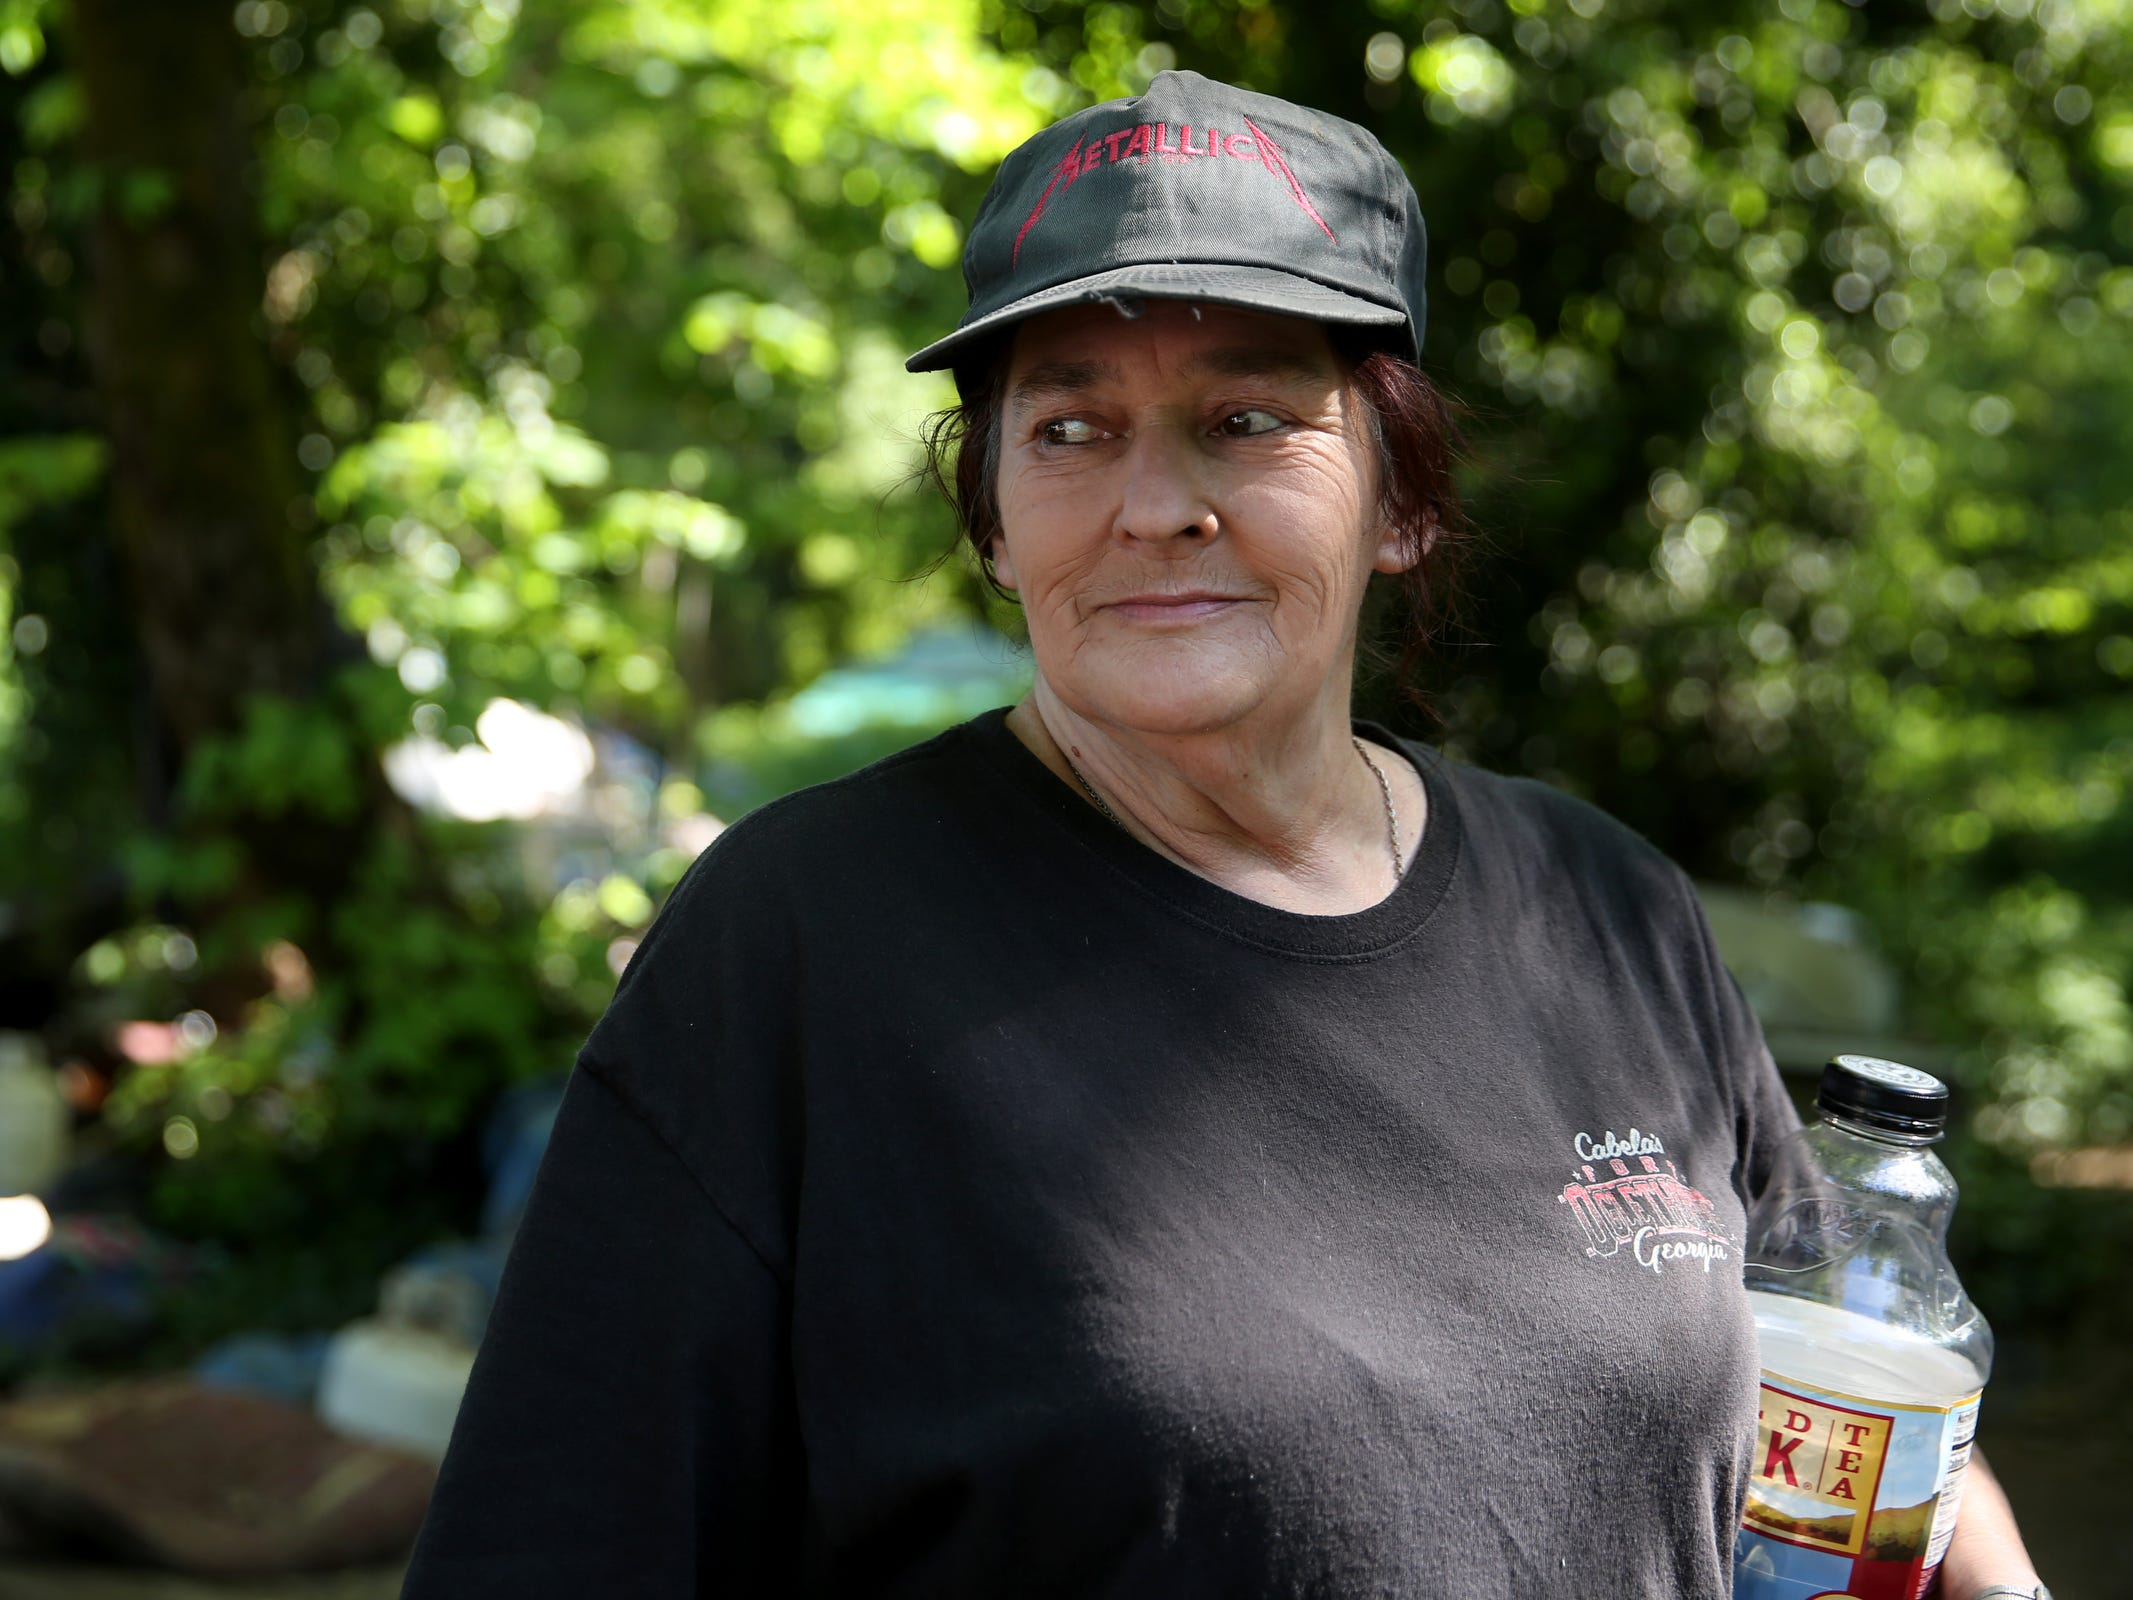 Joan Tomlinson, of West Salem, used to be homeless and now works with others in a homeless camp near Wallace Marine Park in West Salem on May 6, 2019. Signs were posted throughout the camp recently stating personal property must be removed or it will be taken by the landowner and its designated agent starting May 7.